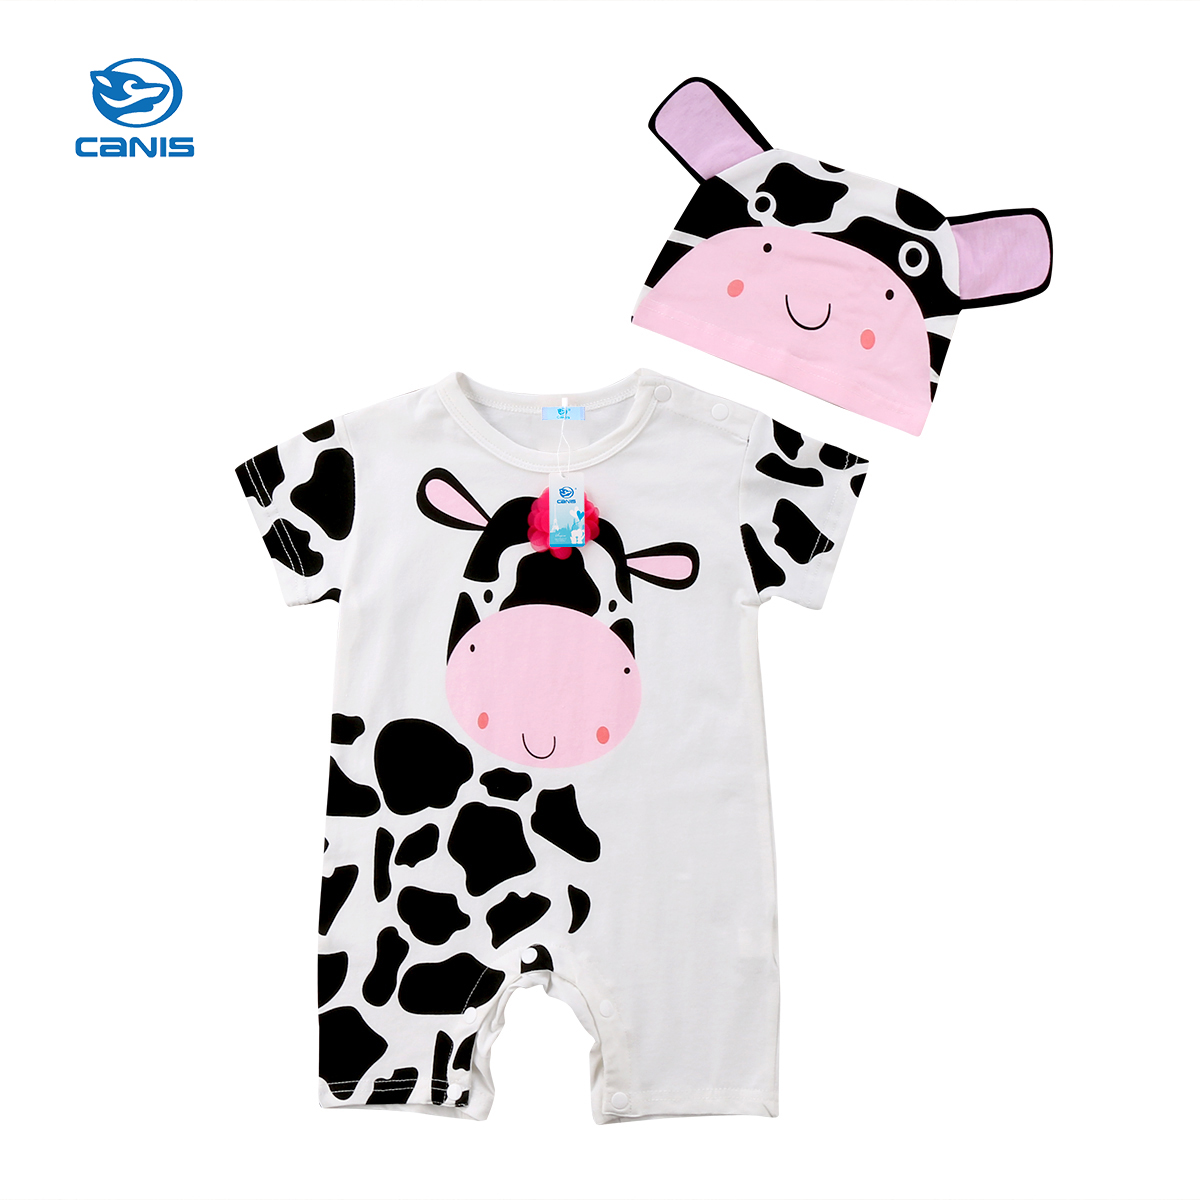 CANIS 2Pcs Lovely Summer Clothing Newborn Infant Baby Girl Boy Romper 3D Cows Hat Romper Jumpsuit Playsuit Outfit Clothing